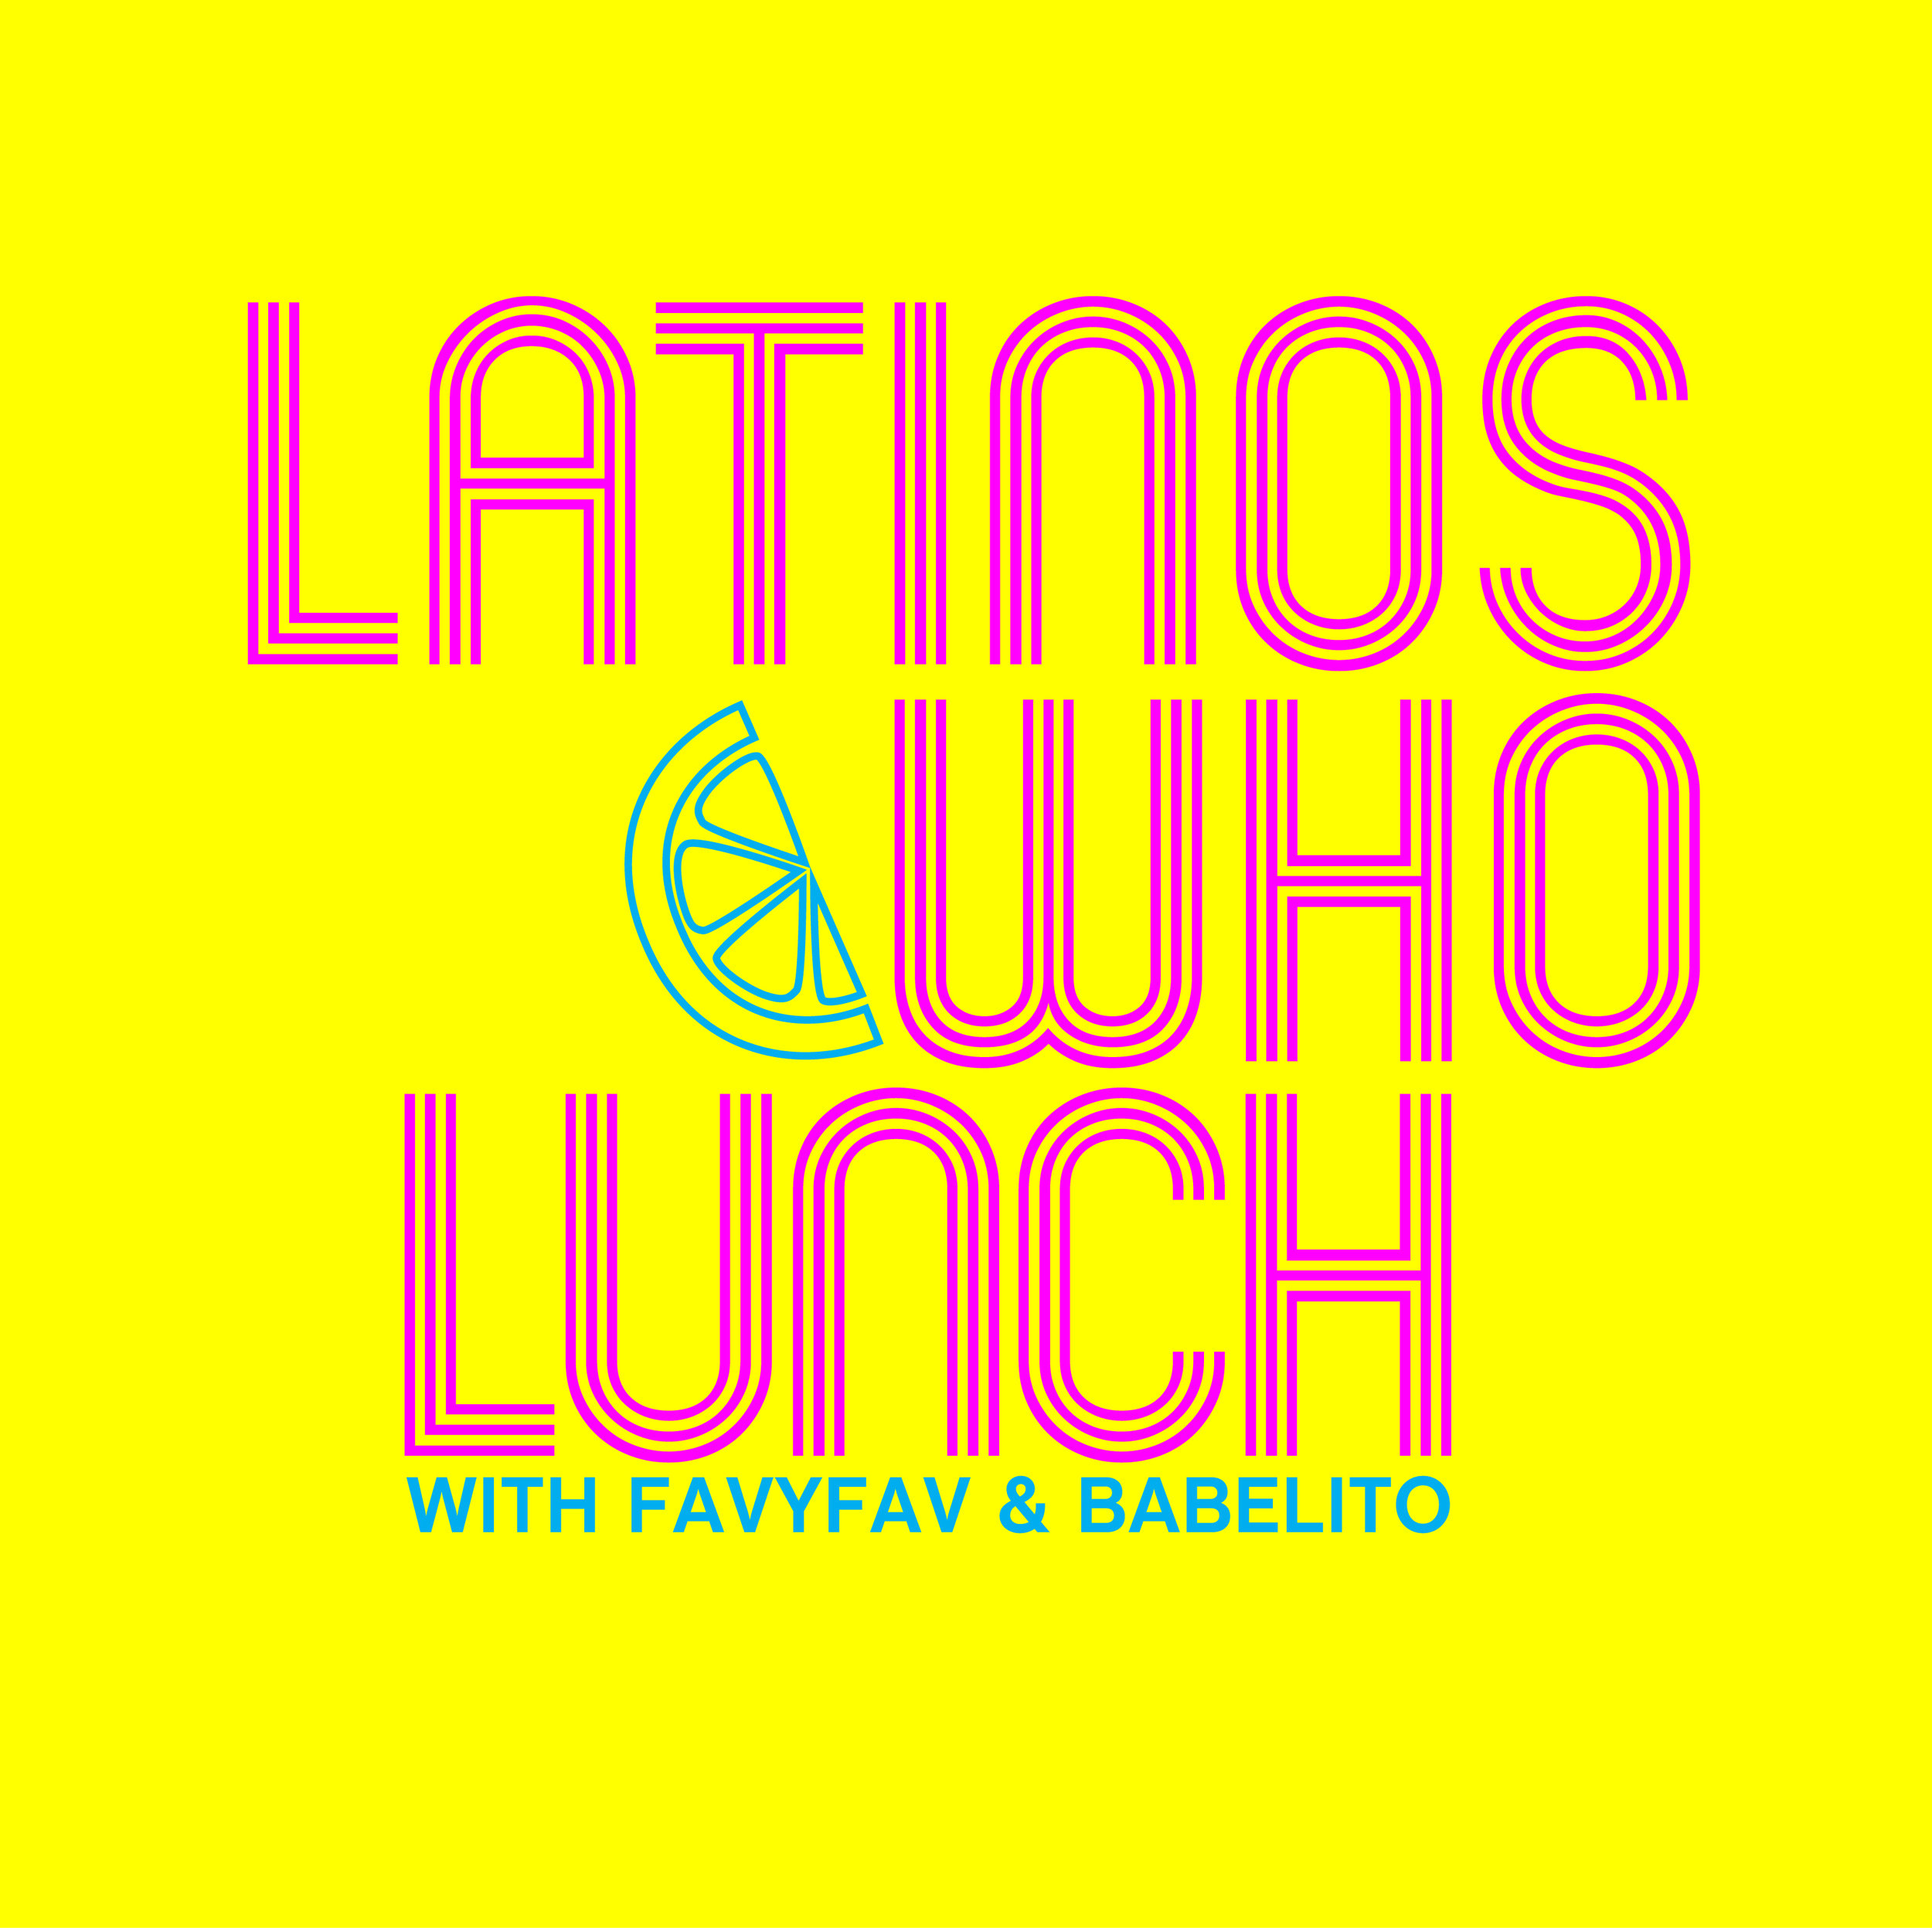 Latinos_who_lunch_new.jpg